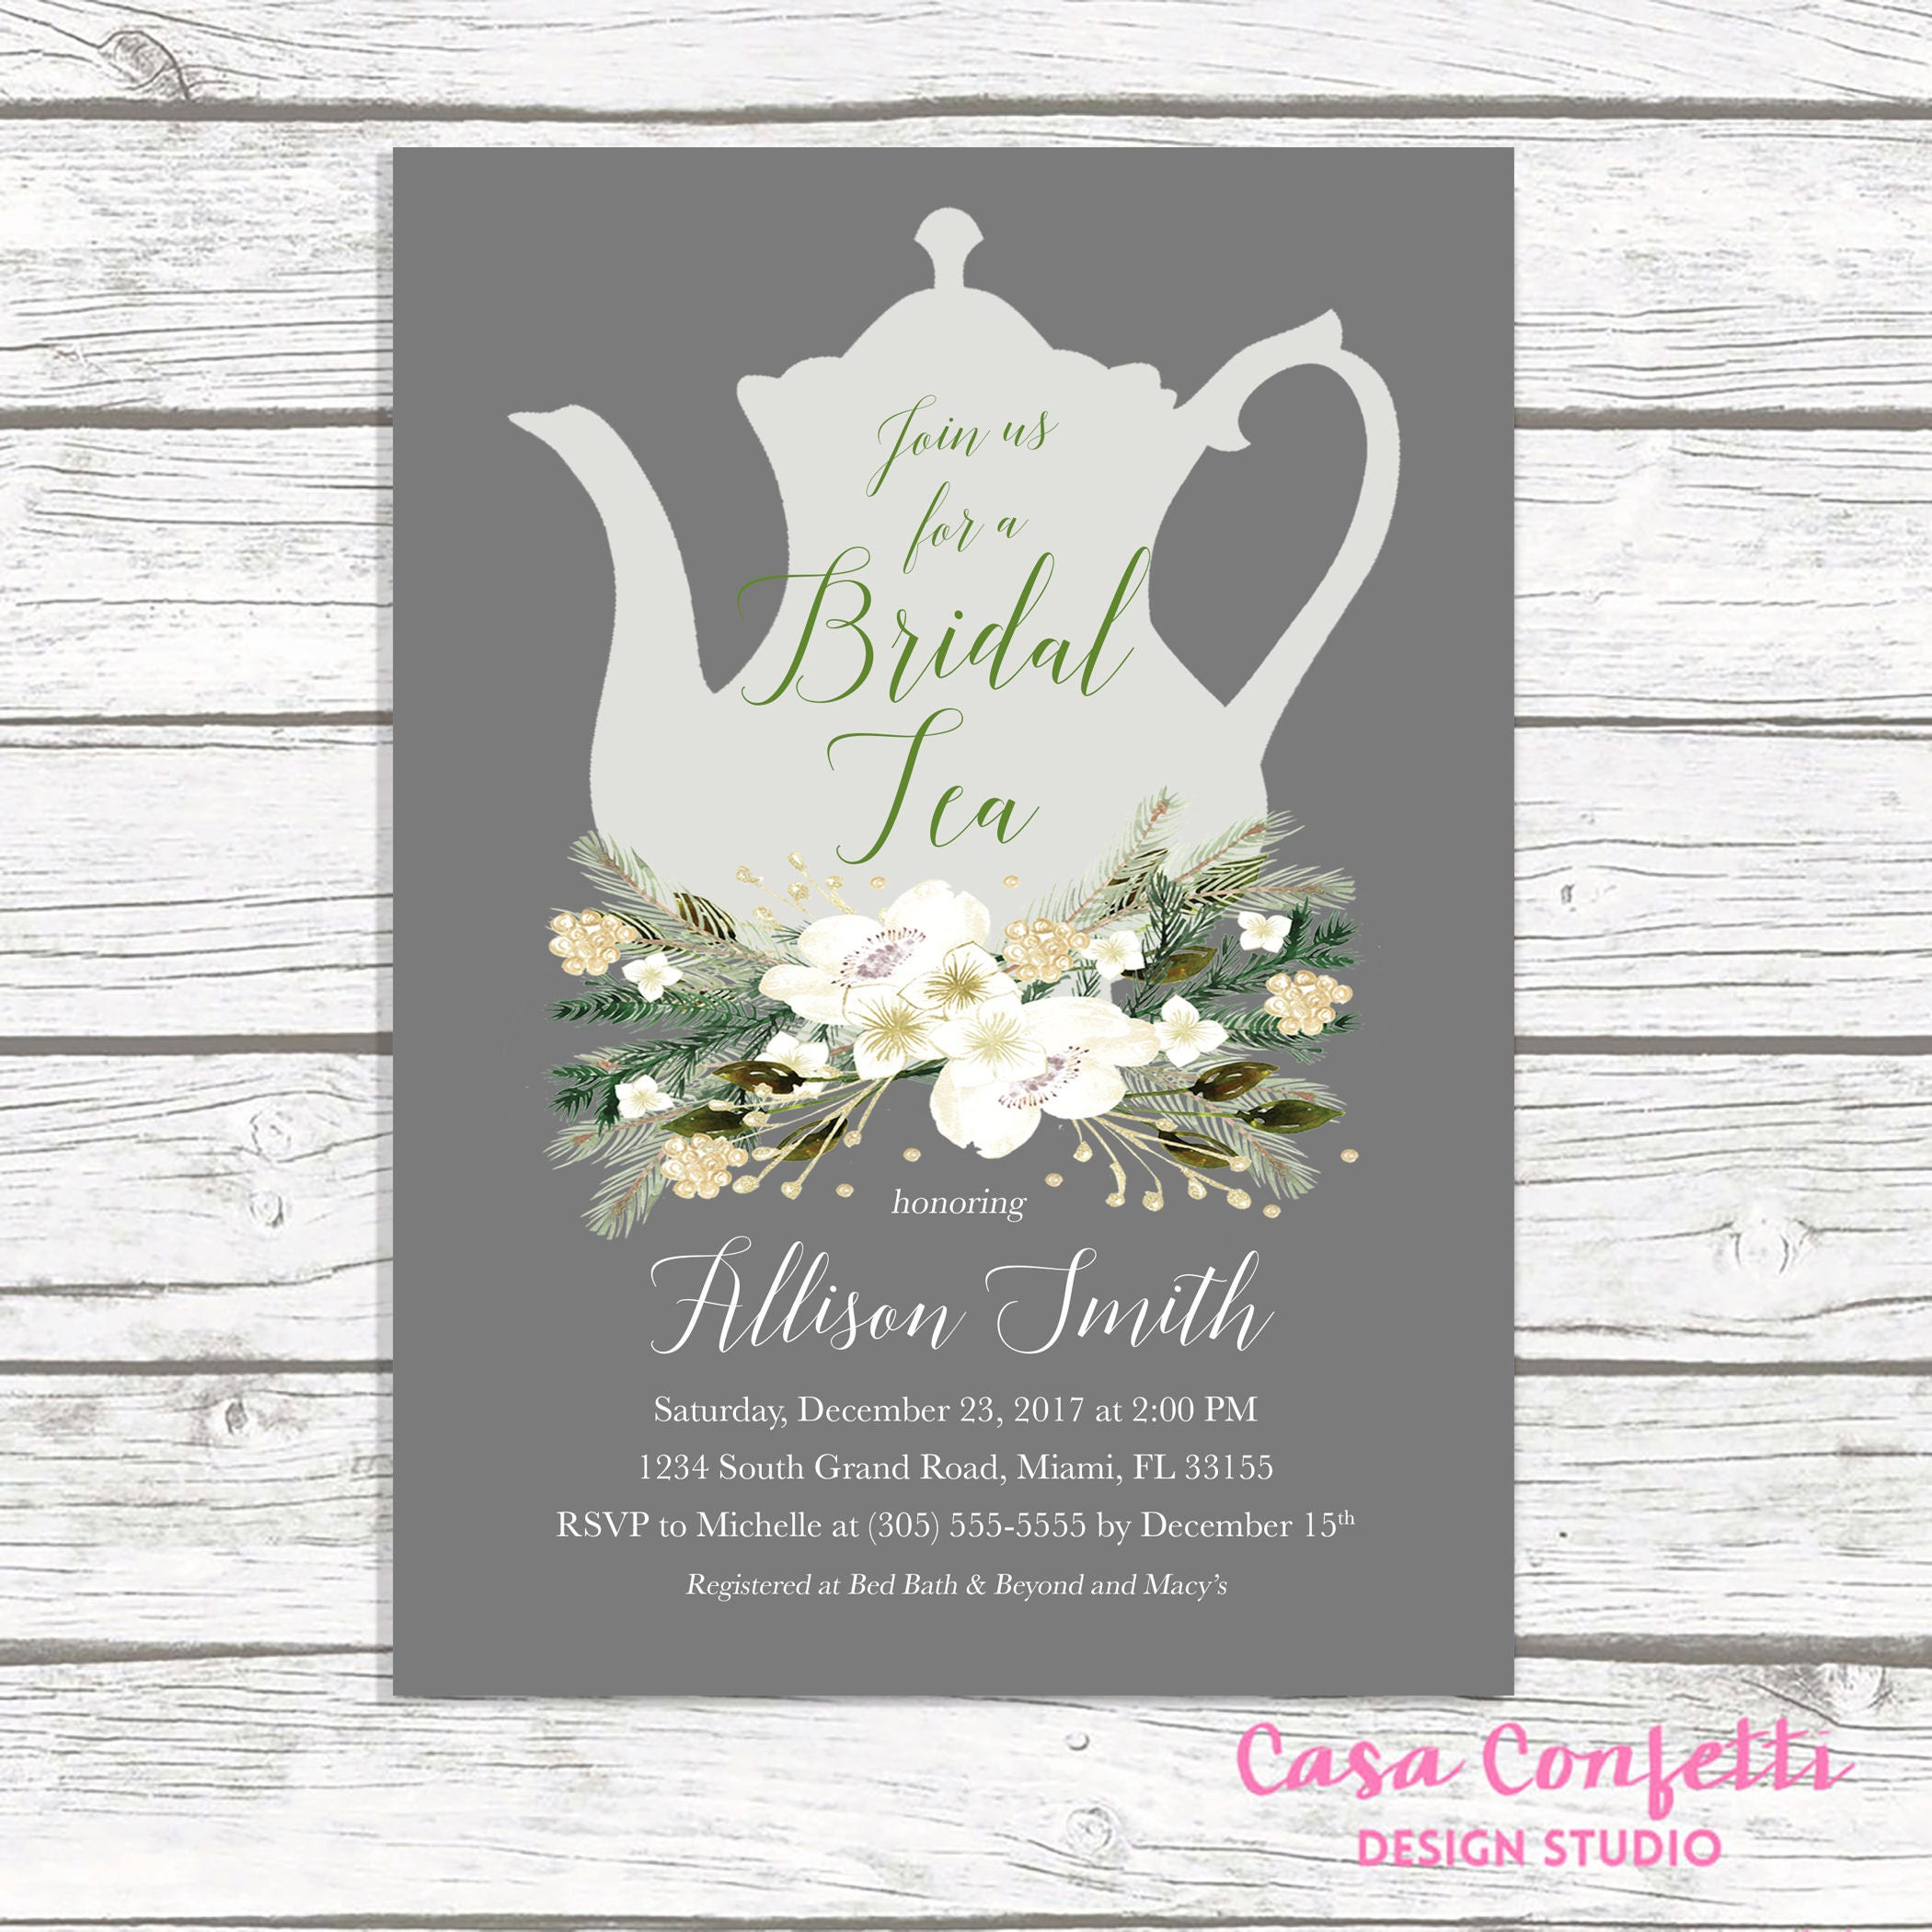 bridal makes joann fun invitation shower invites kit